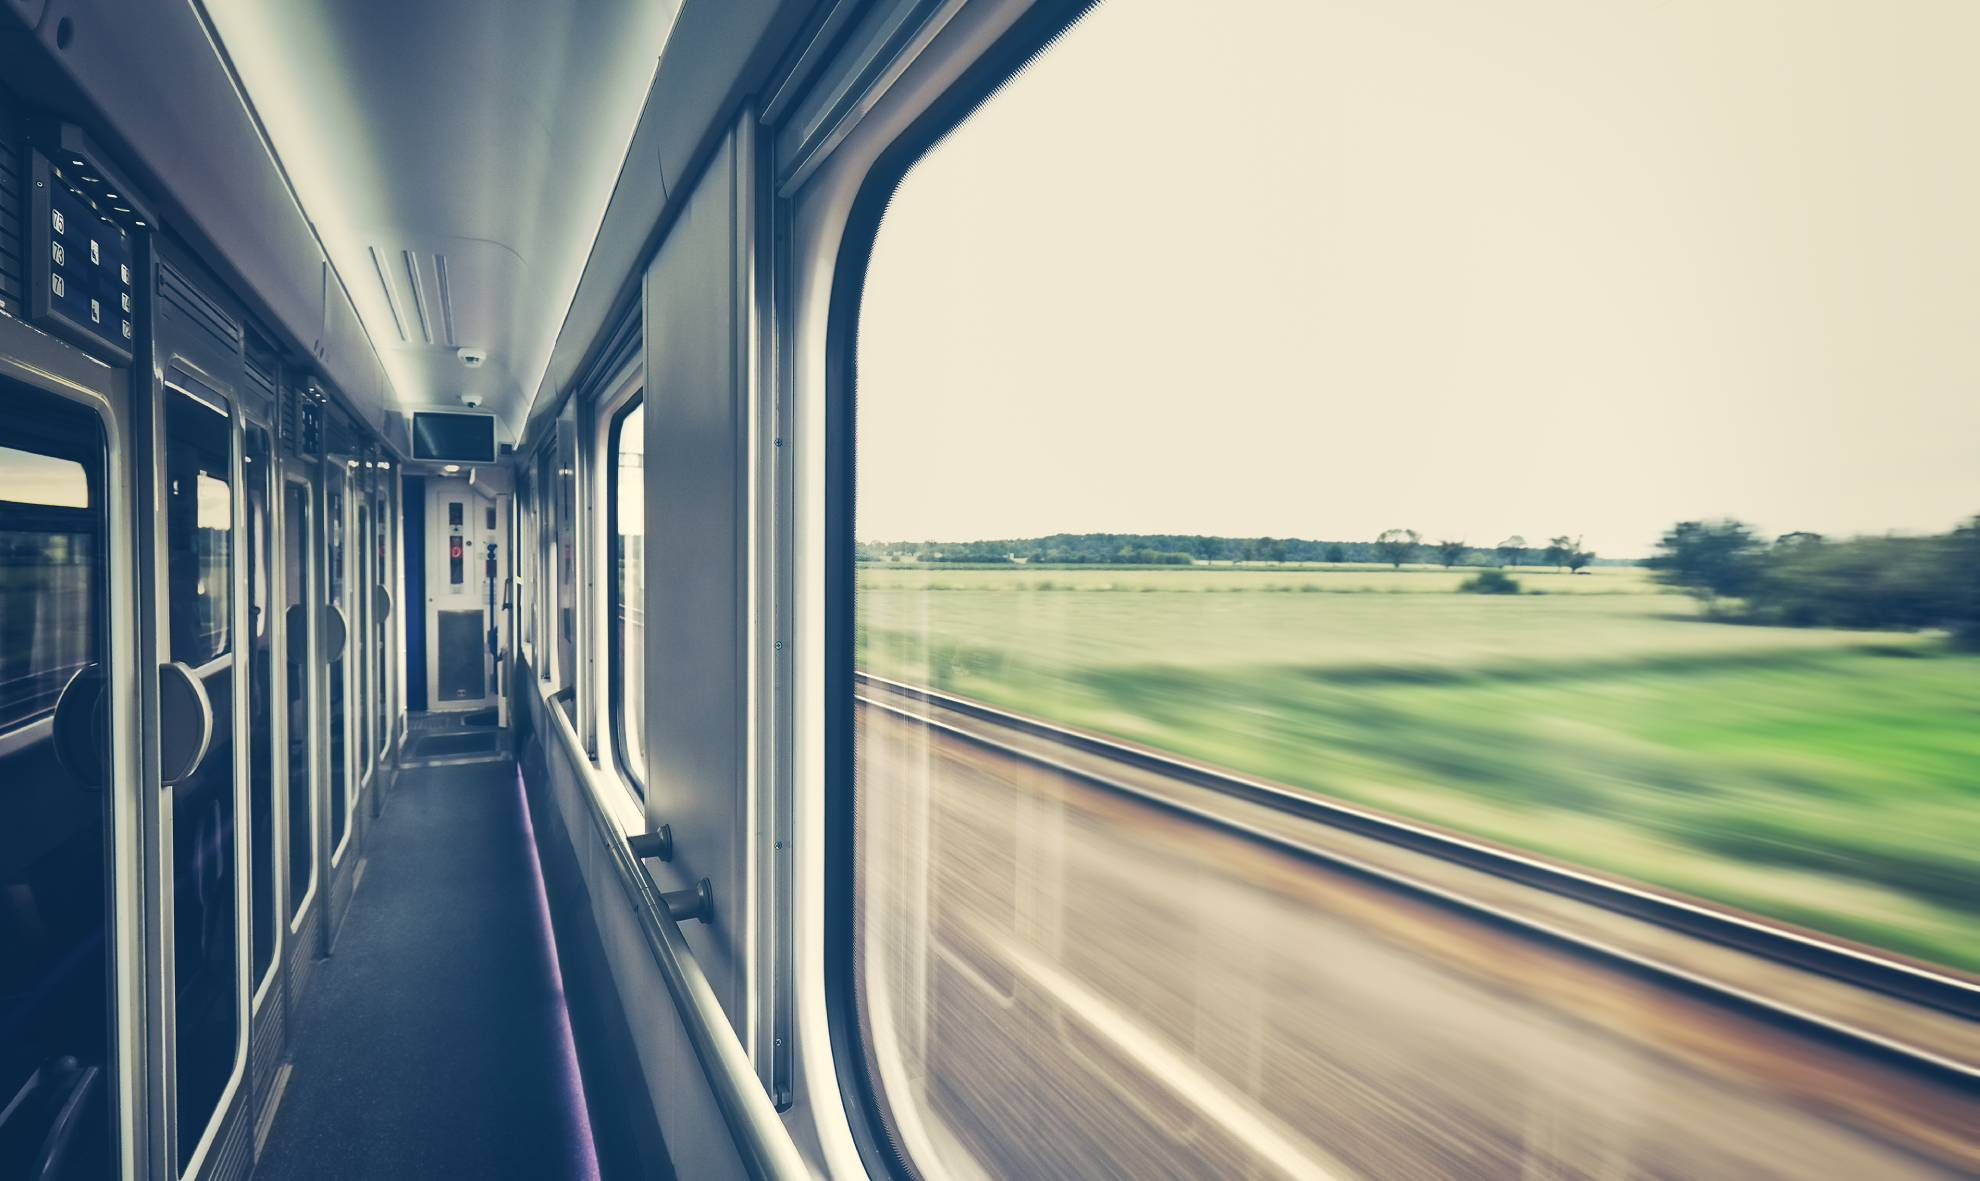 retro-toned-window-of-a-train-in-motion-PBM9ZKL (1)